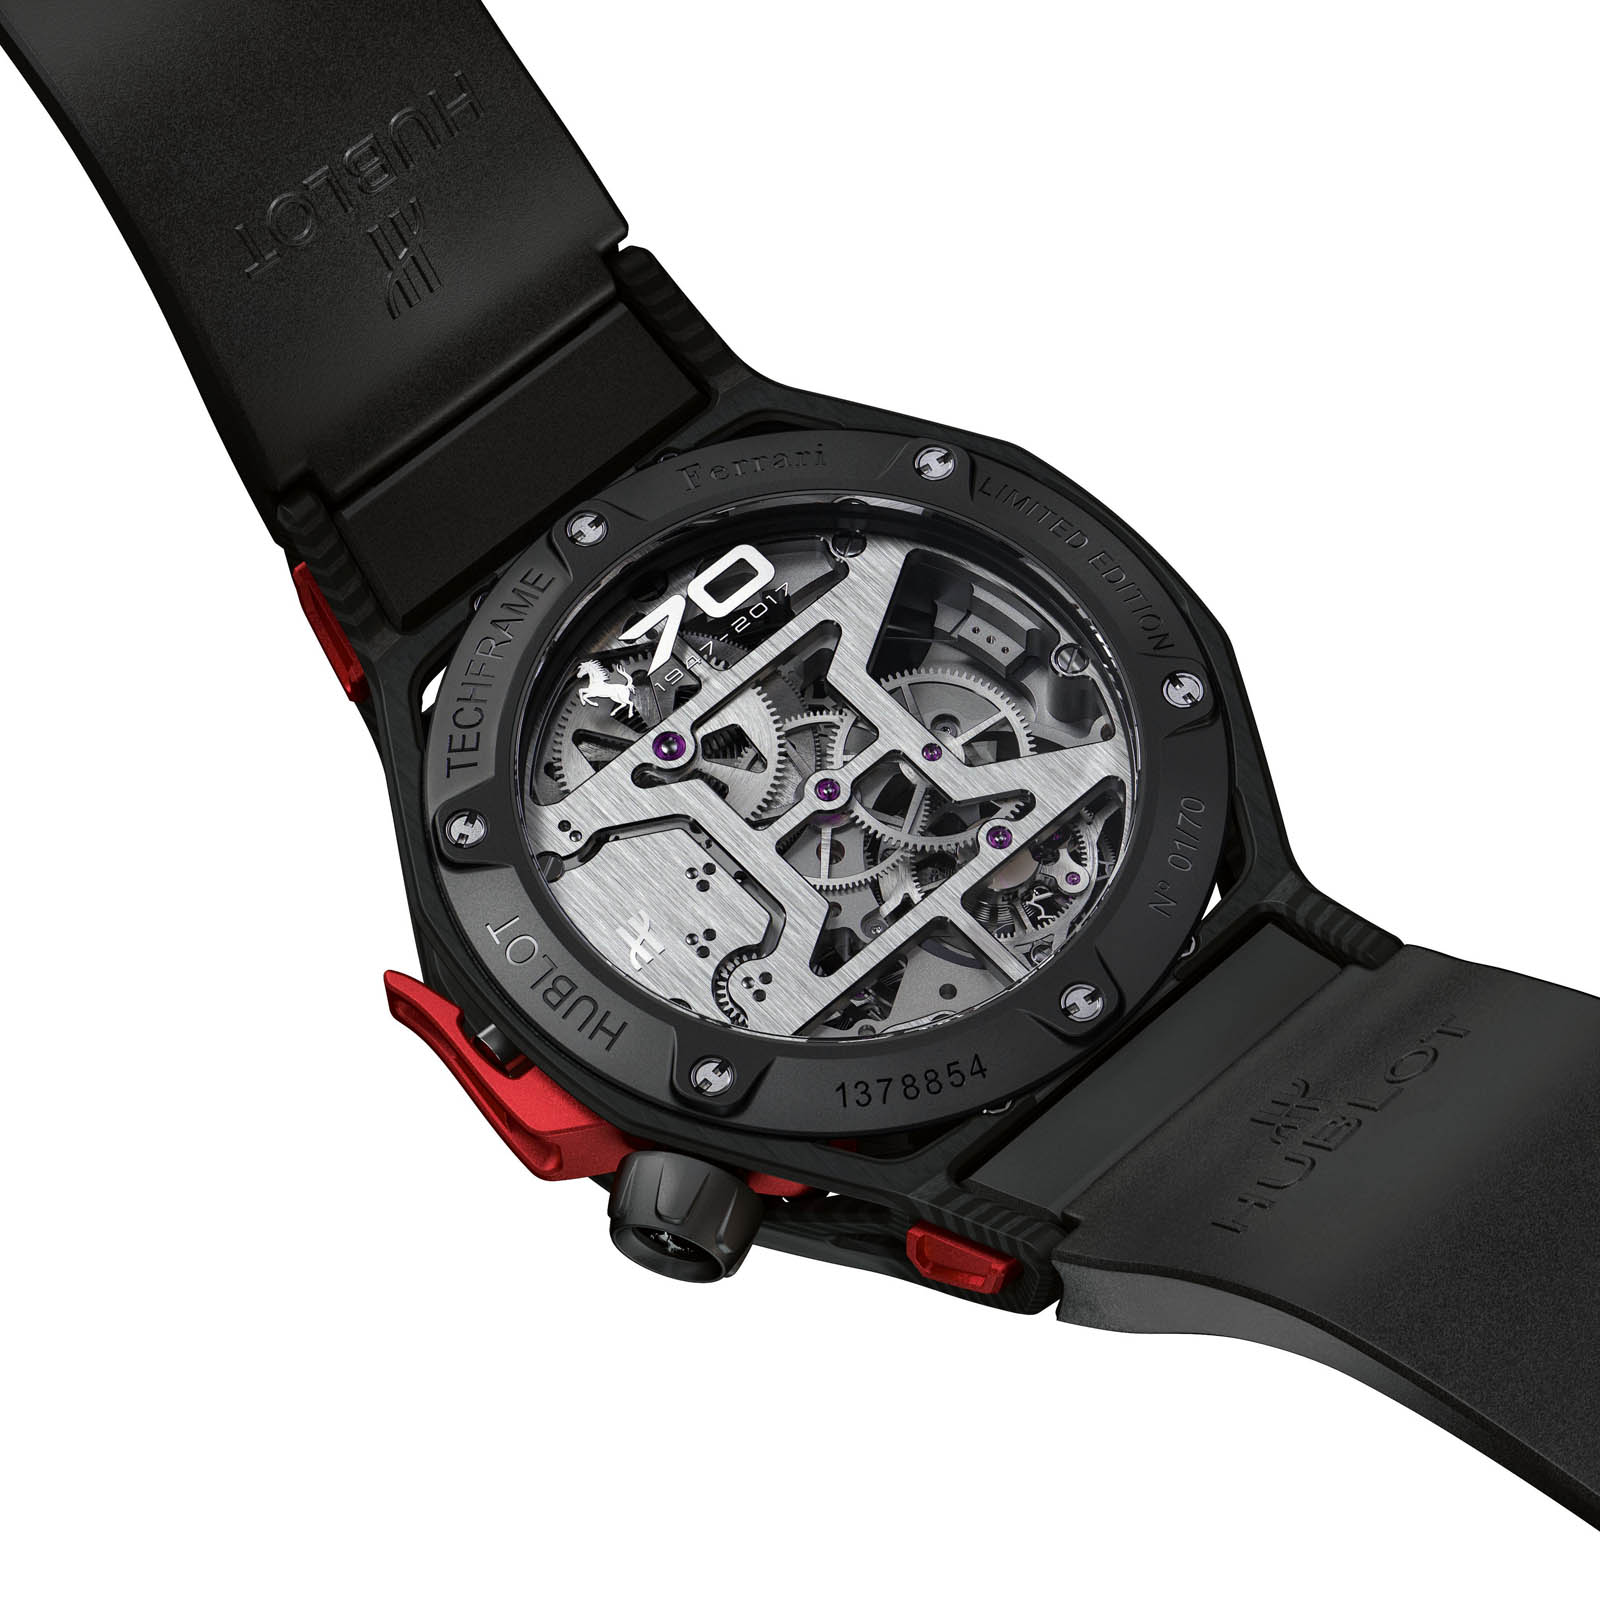 Hublot Techframe (21)